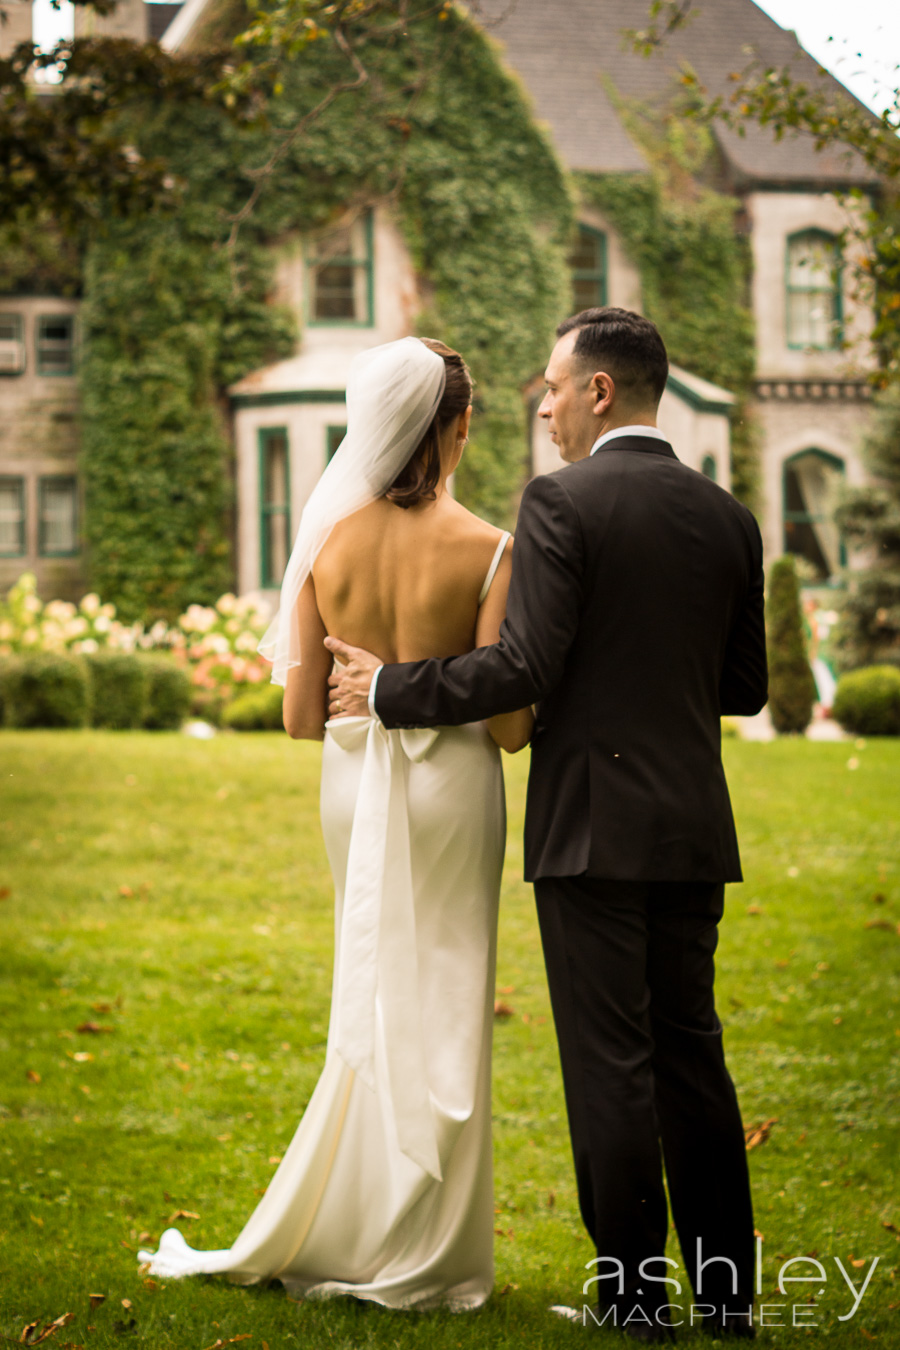 Ashley MacPhee Photography Montreal Wedding (5 of 11).jpg